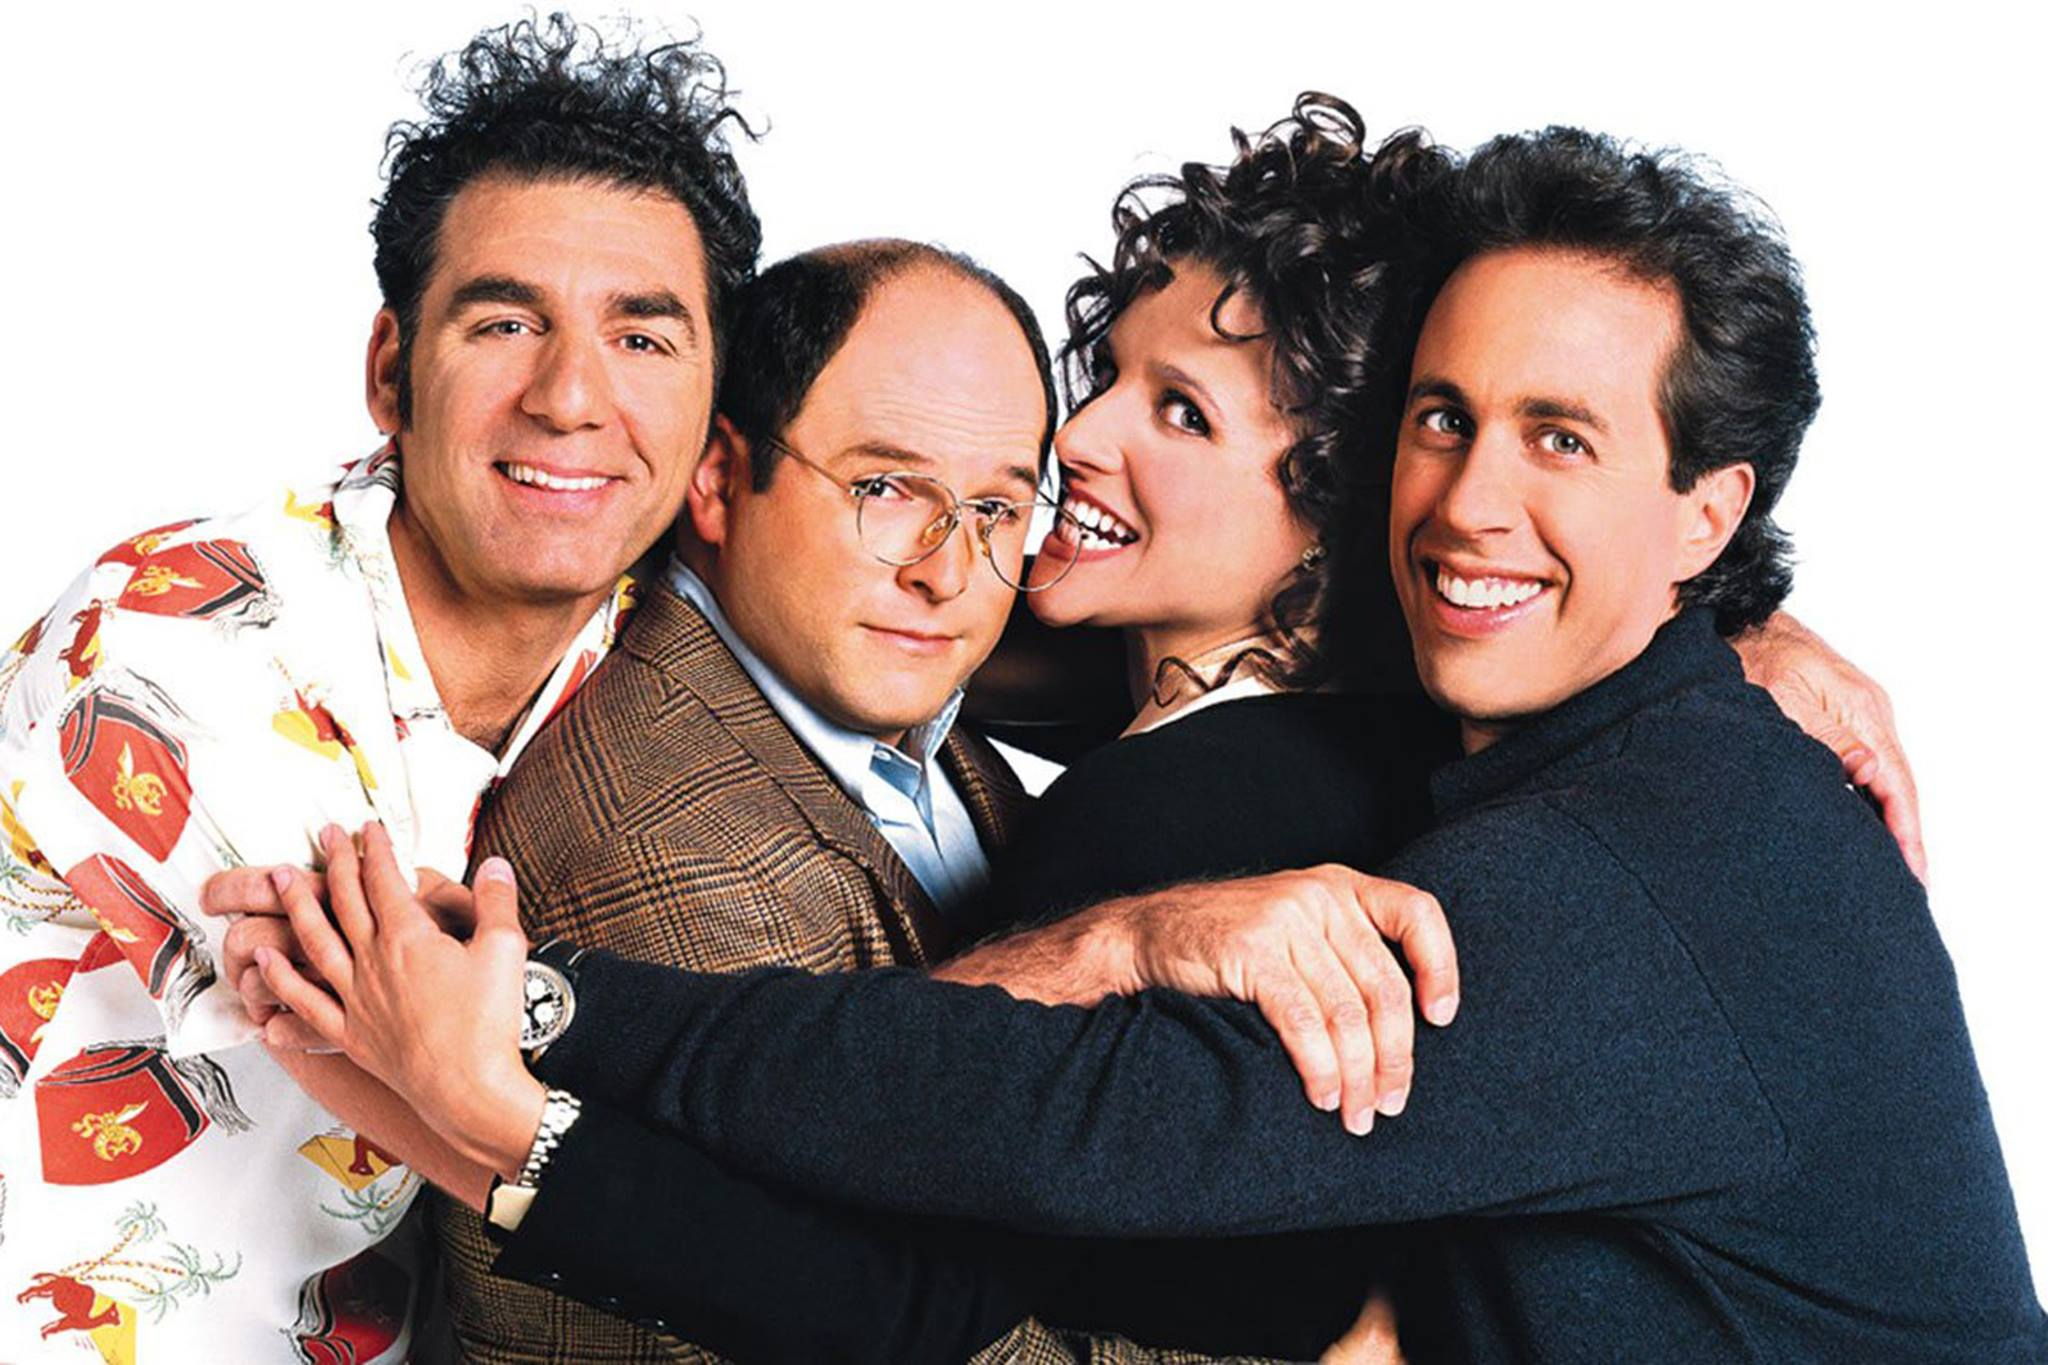 Seinfeld Trivia at Roaring Table